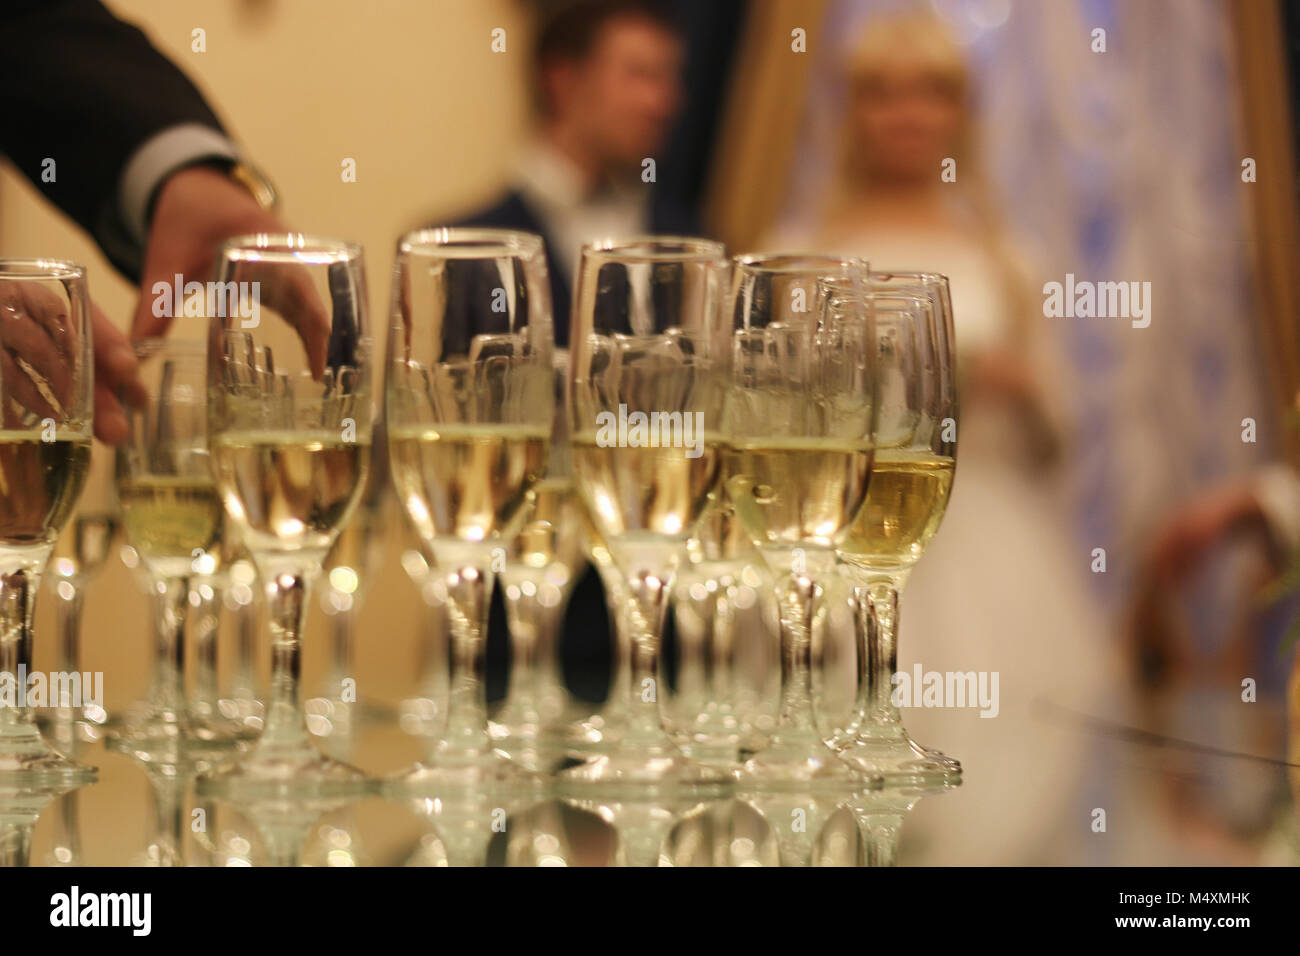 Wedding Accessories. Bridal bouquet and champagne glasses. - Stock Image